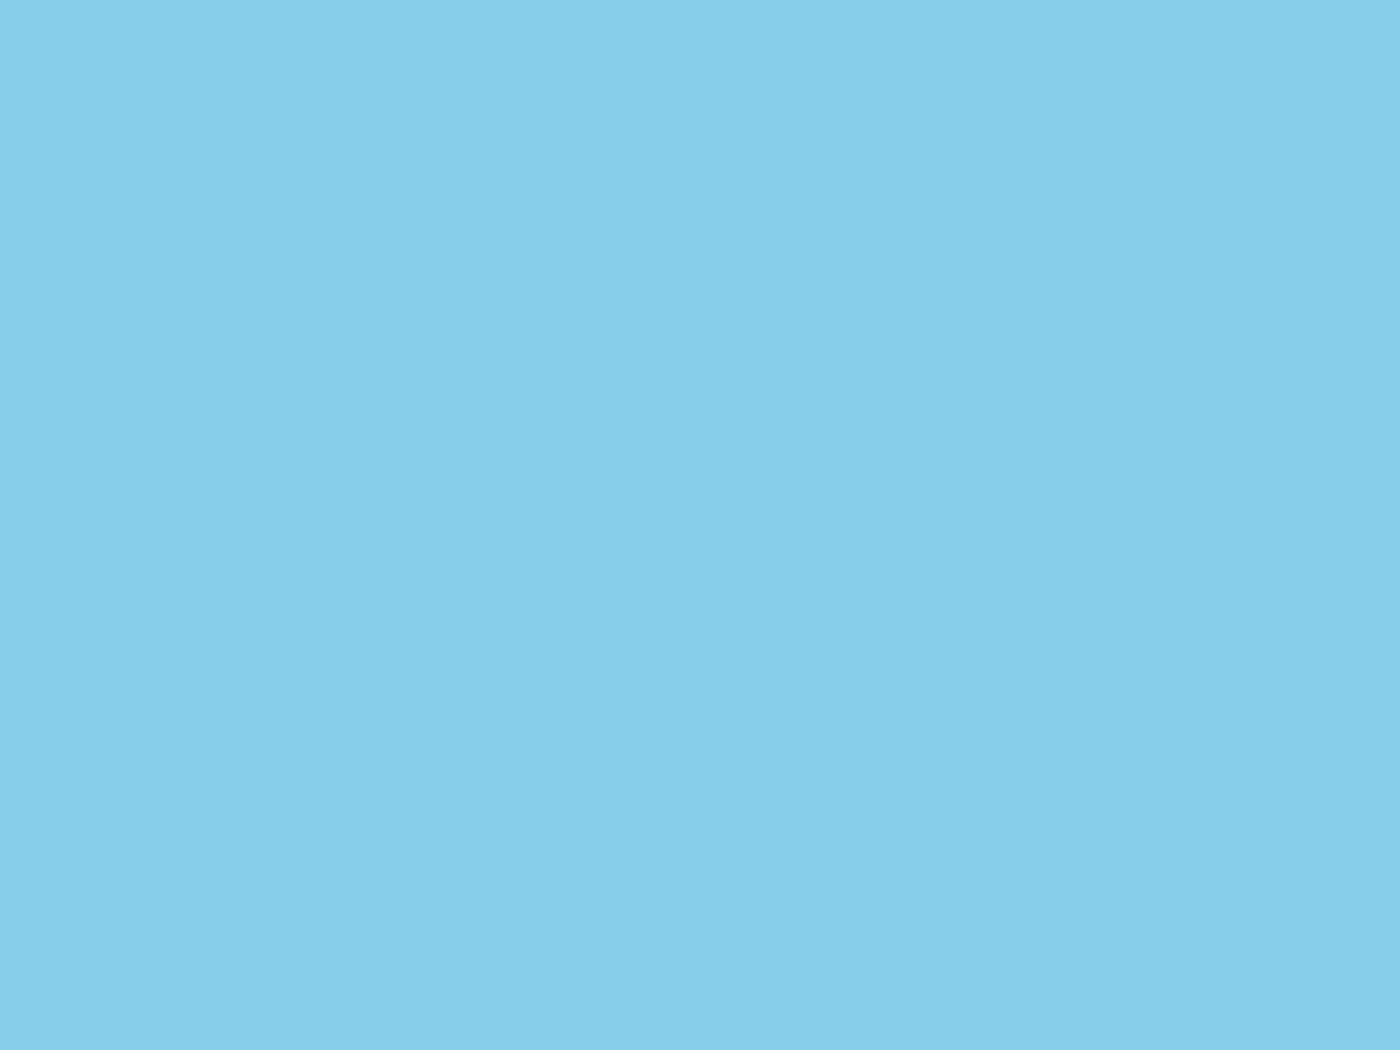 1400x1050 Sky Blue Solid Color Background